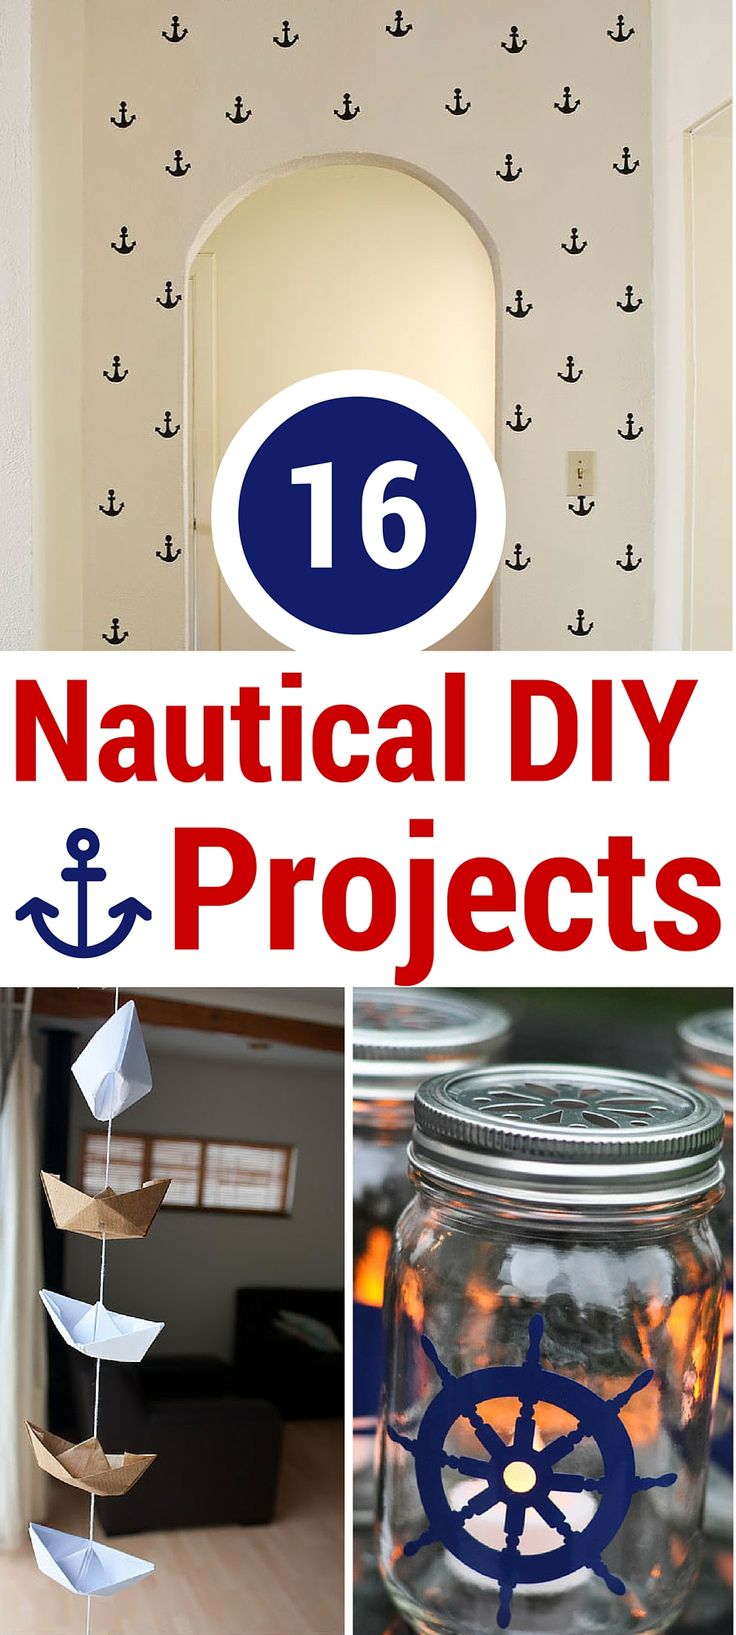 Nautical DIY projects are really in these days. Here are 16 easy projects to give your home a seaside feel, even if you don't live by the beach!